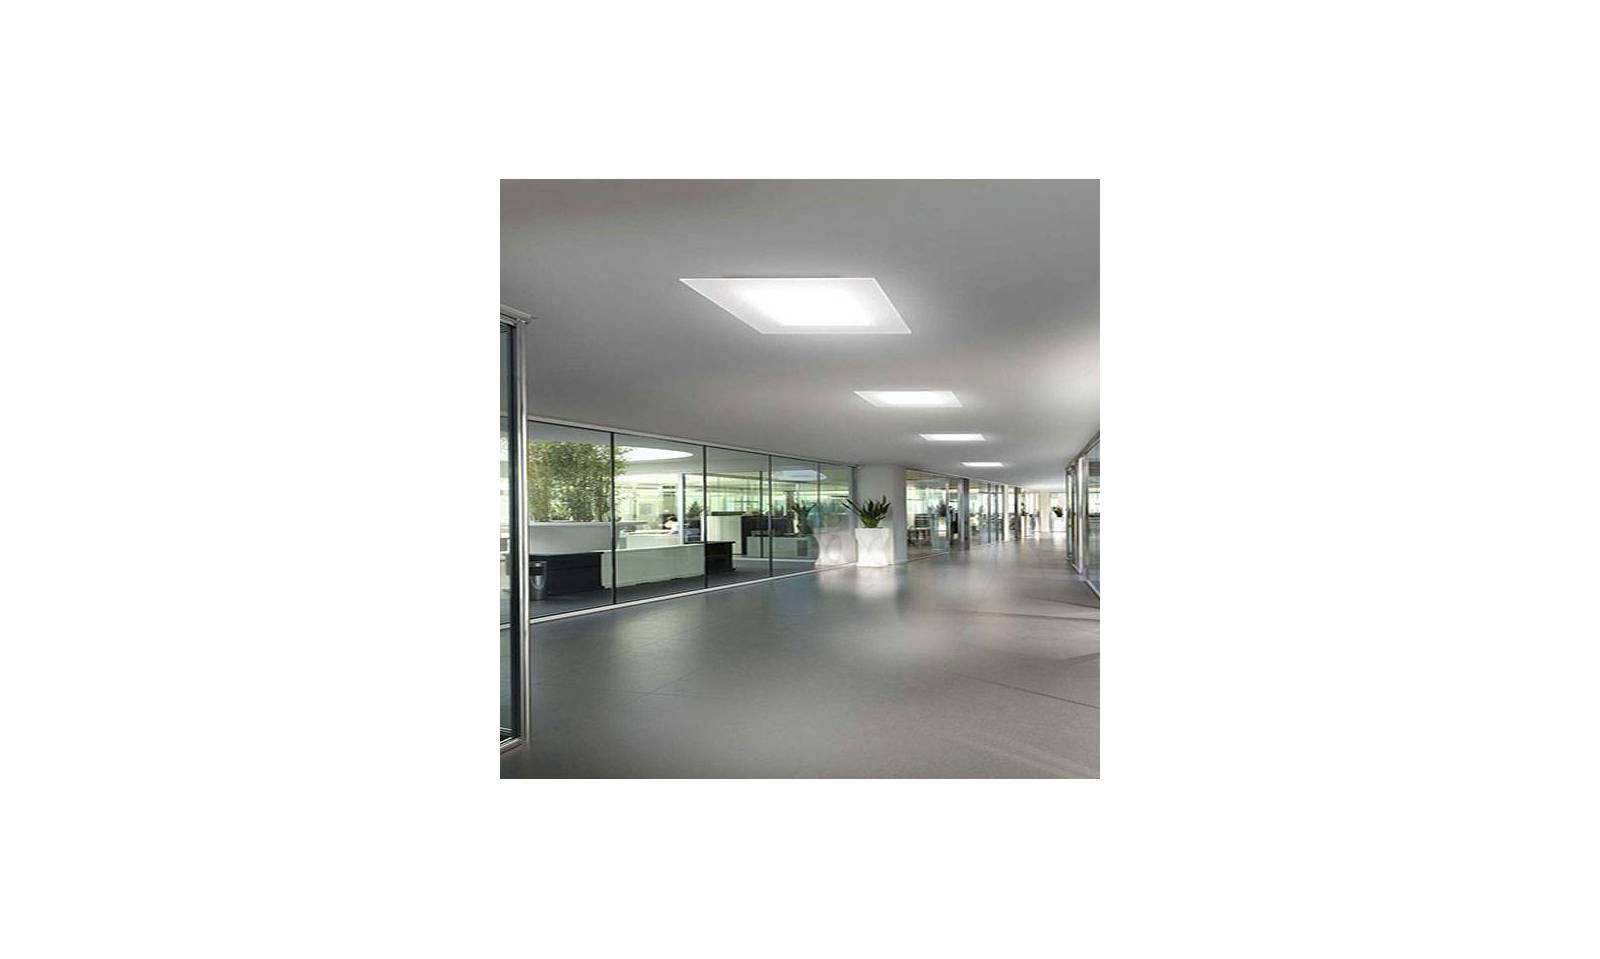 Plafoniera A Led Quadrata : Linea light plafoniera moderna led in metallo serie dublight